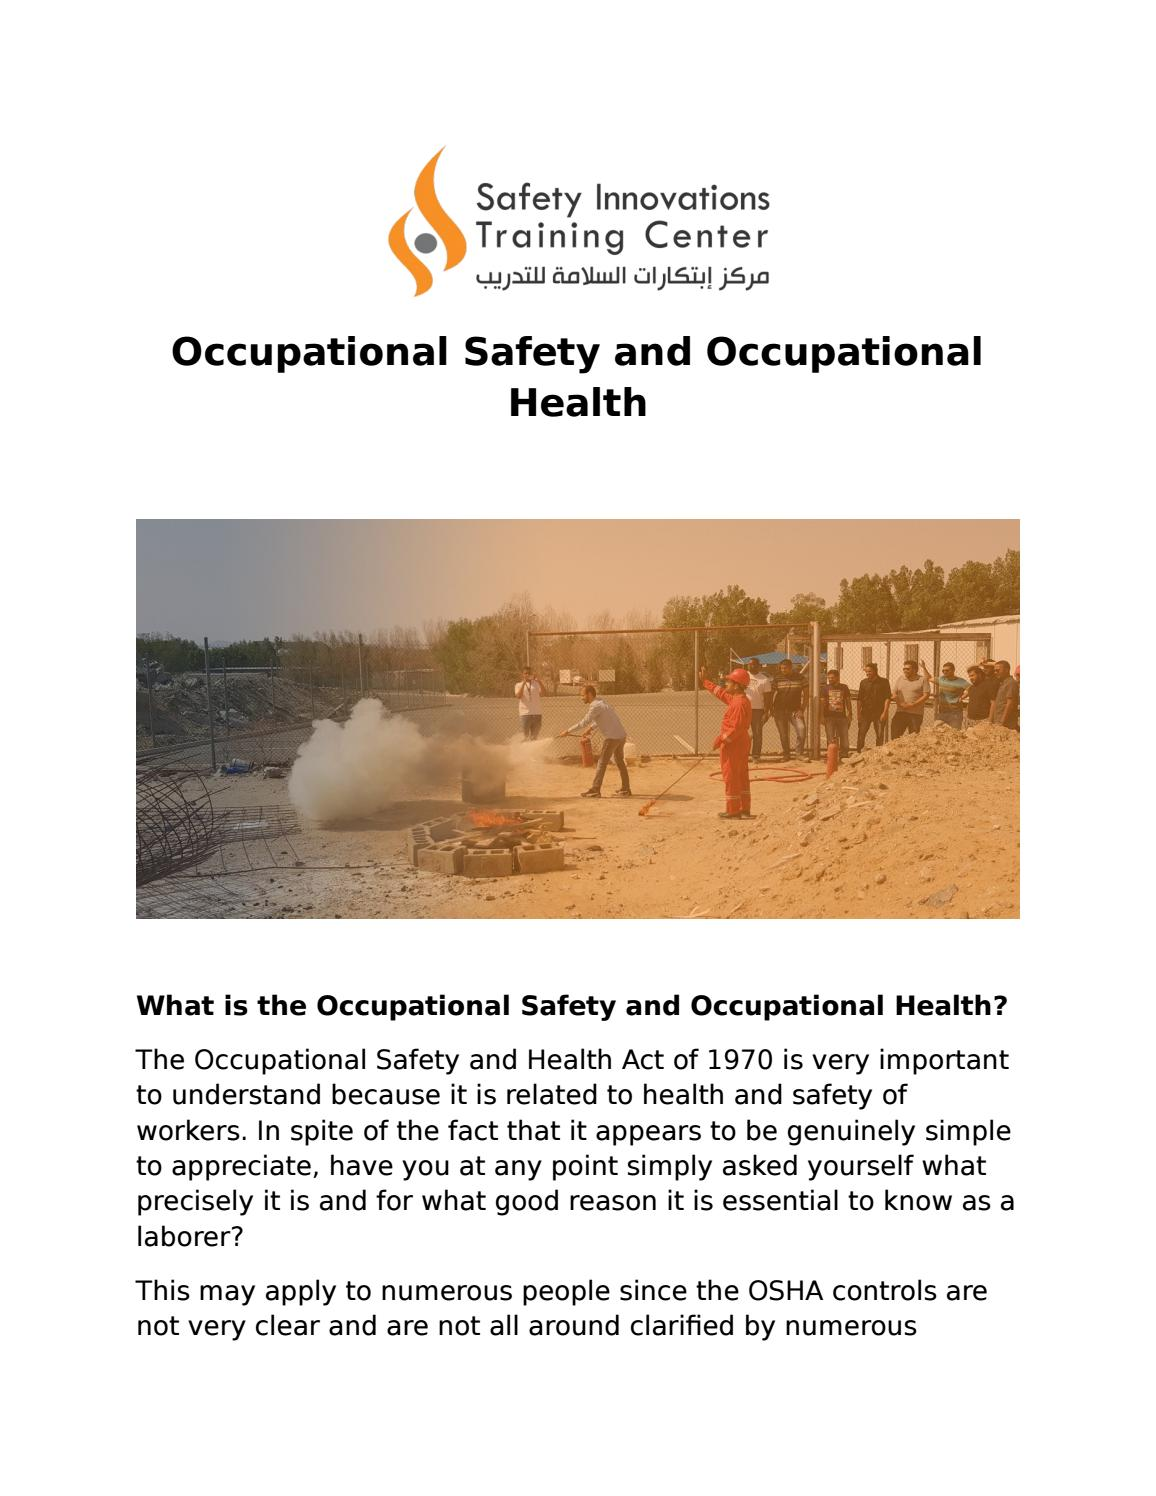 Occupational Safety And Health By Safety Innovation Training Center Issuu